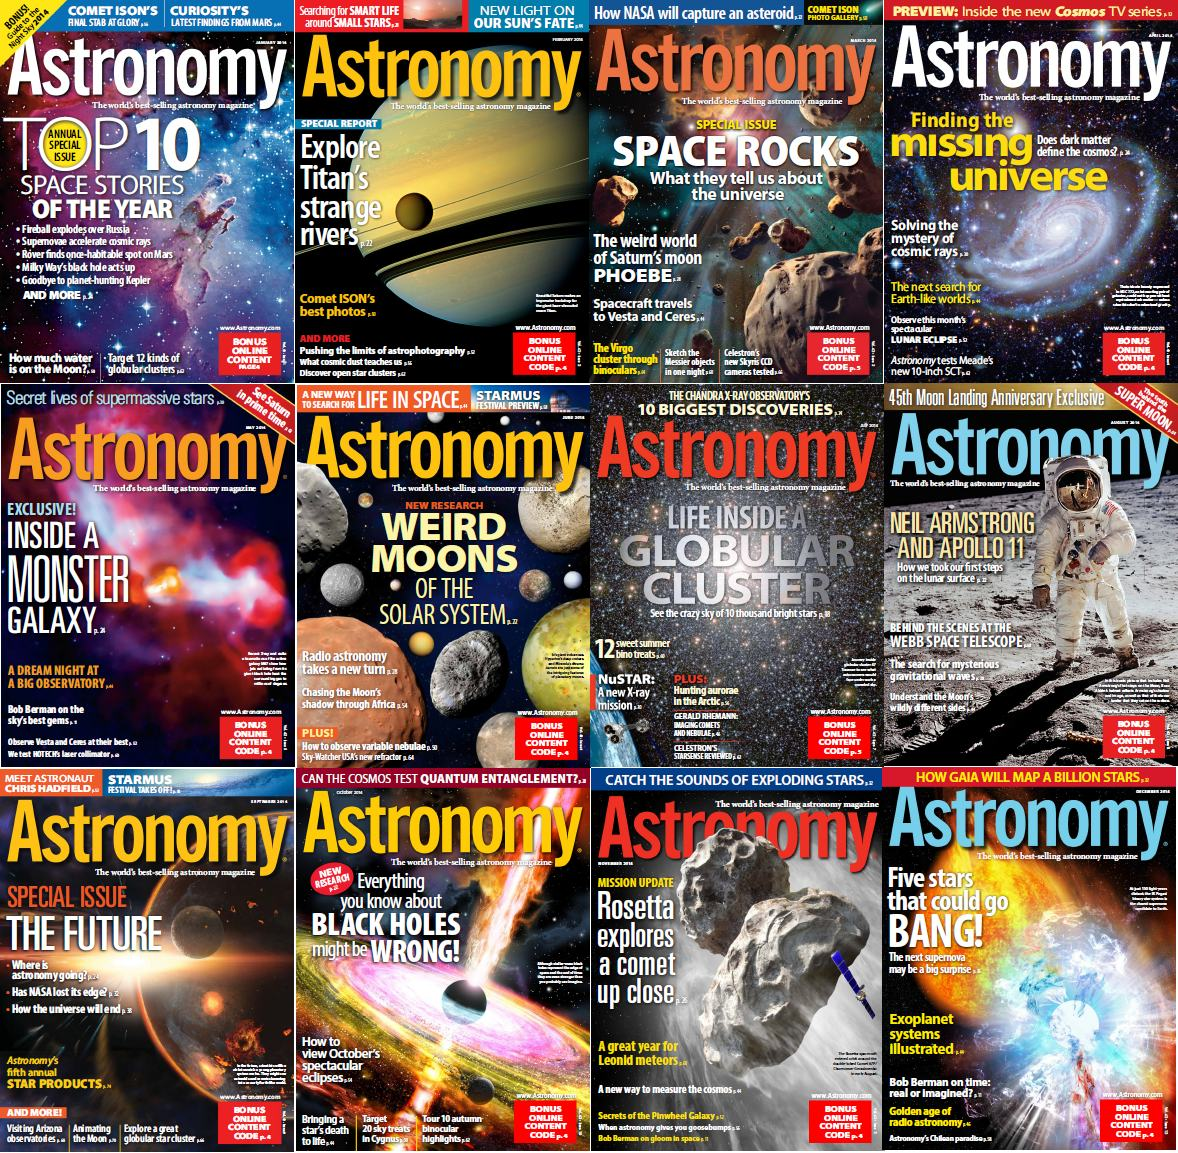 Astronomy Magazine - Full Year 2014 Issues Collection